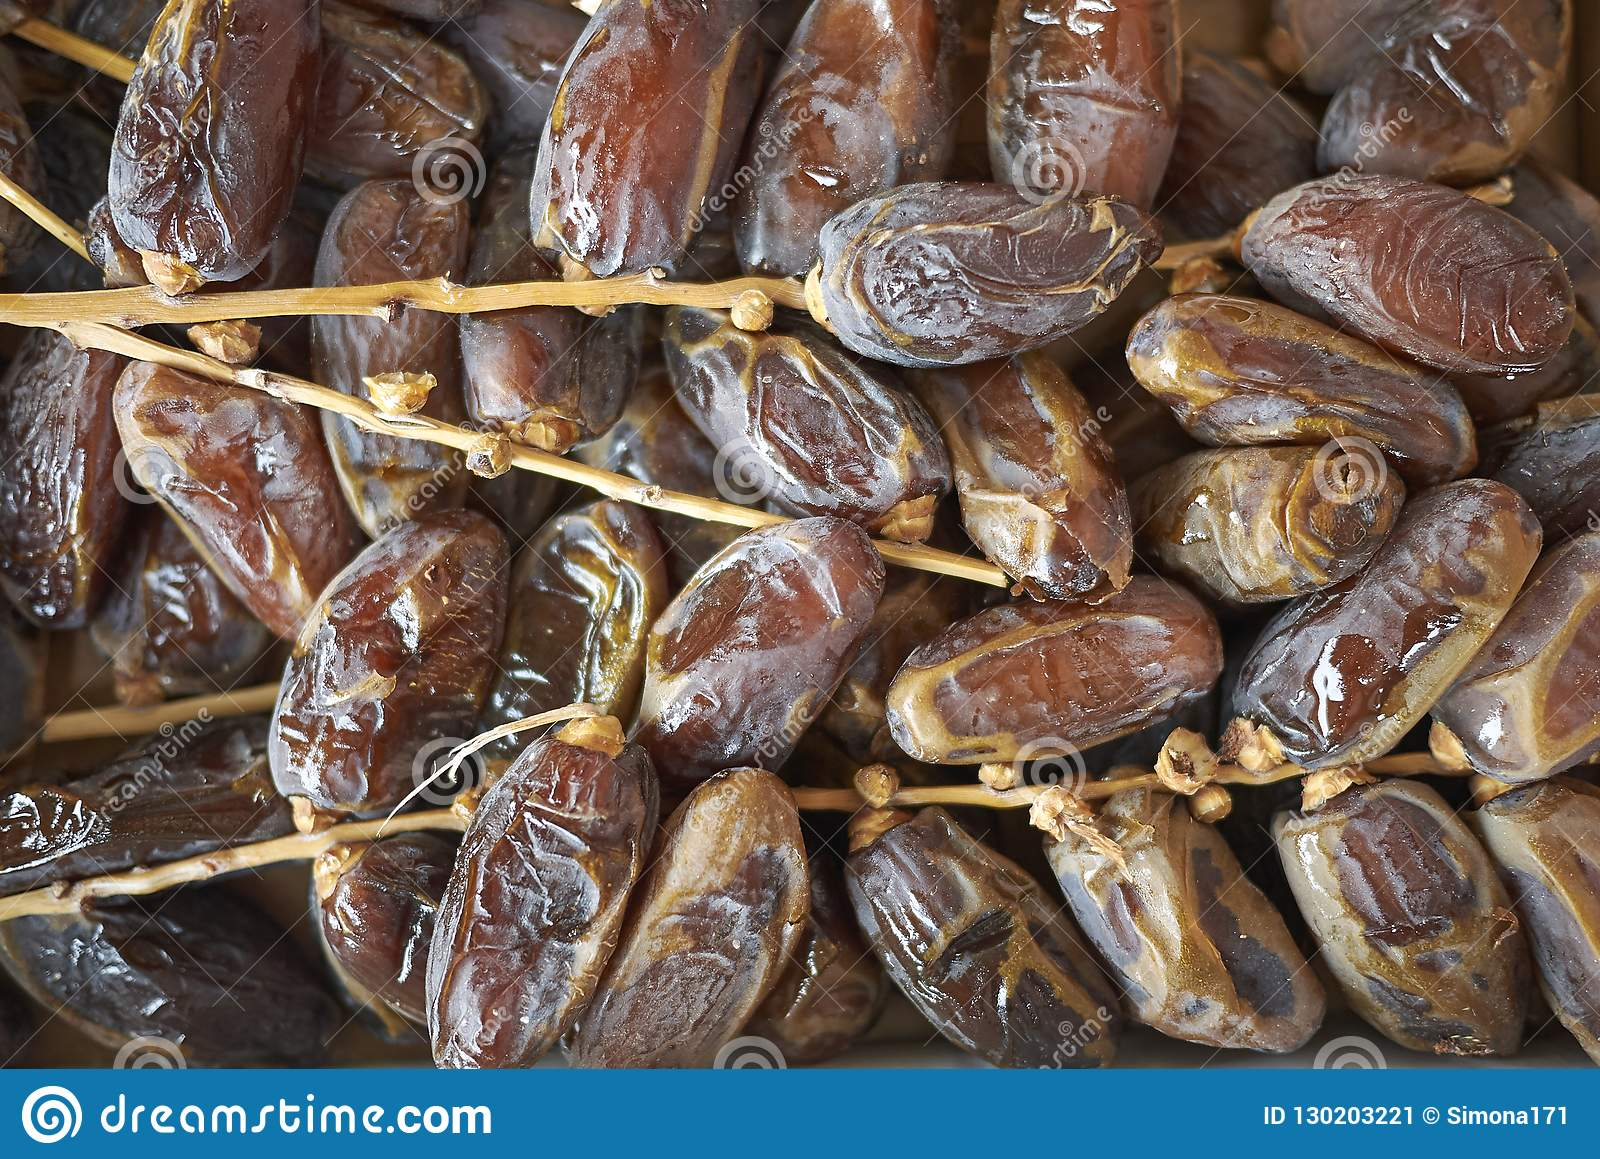 Sugared dates on a tray